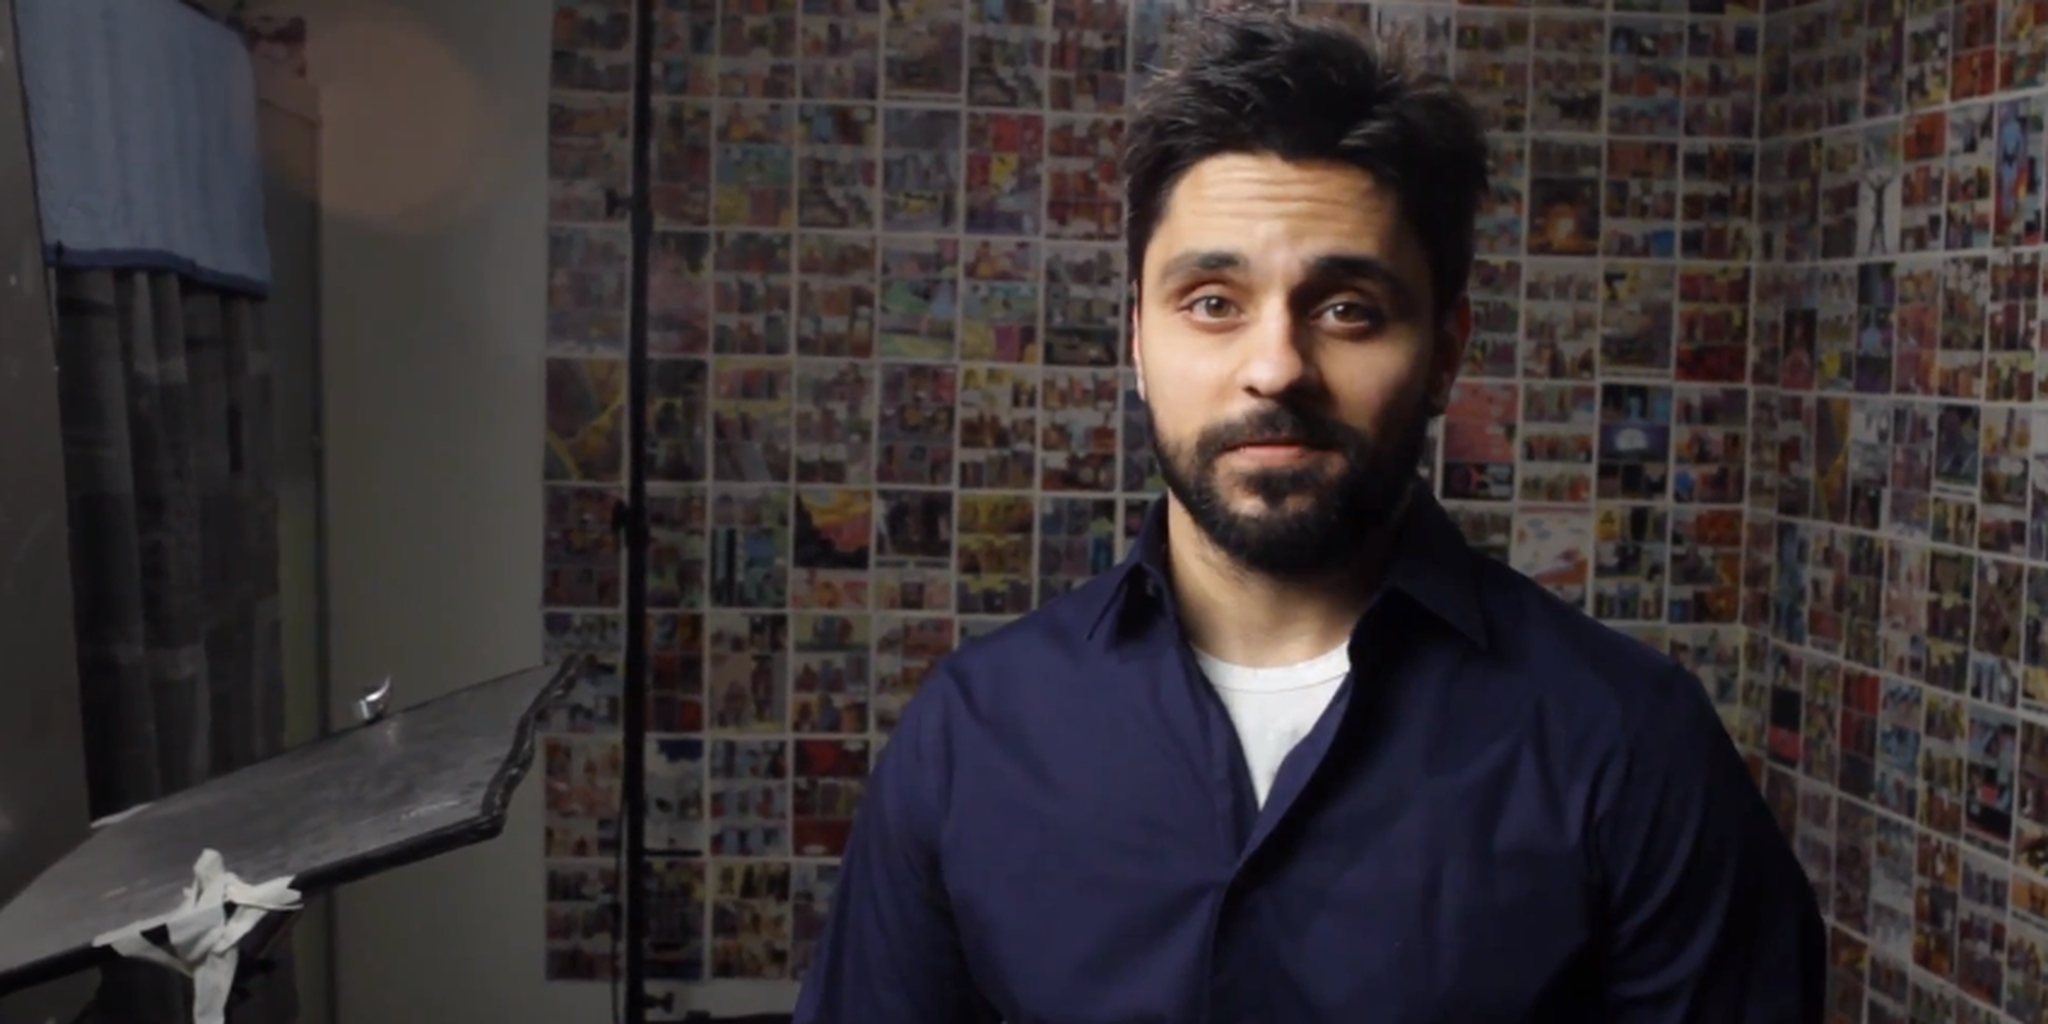 ray william johnson sex offender on the loose song in Austin